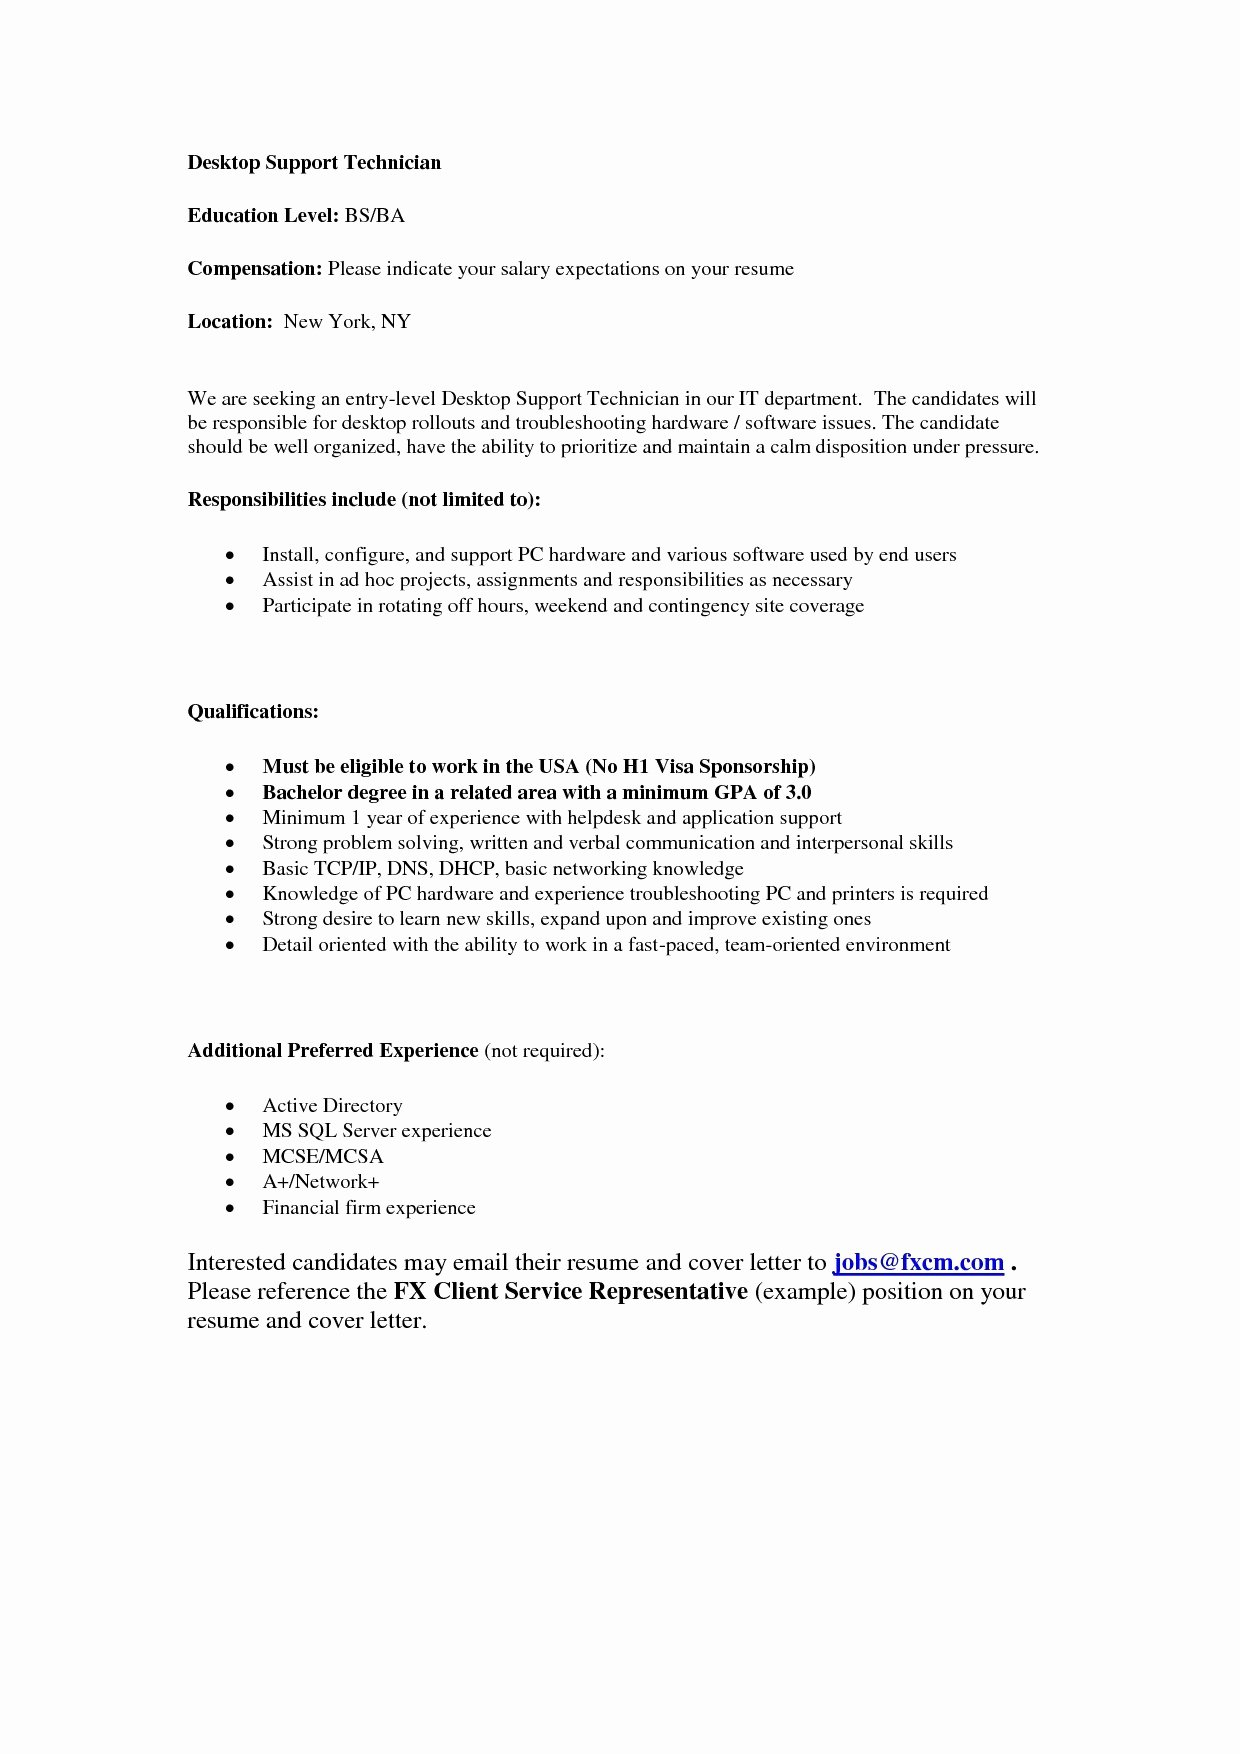 Desktop Support Technician Cover Letter Puter Repair